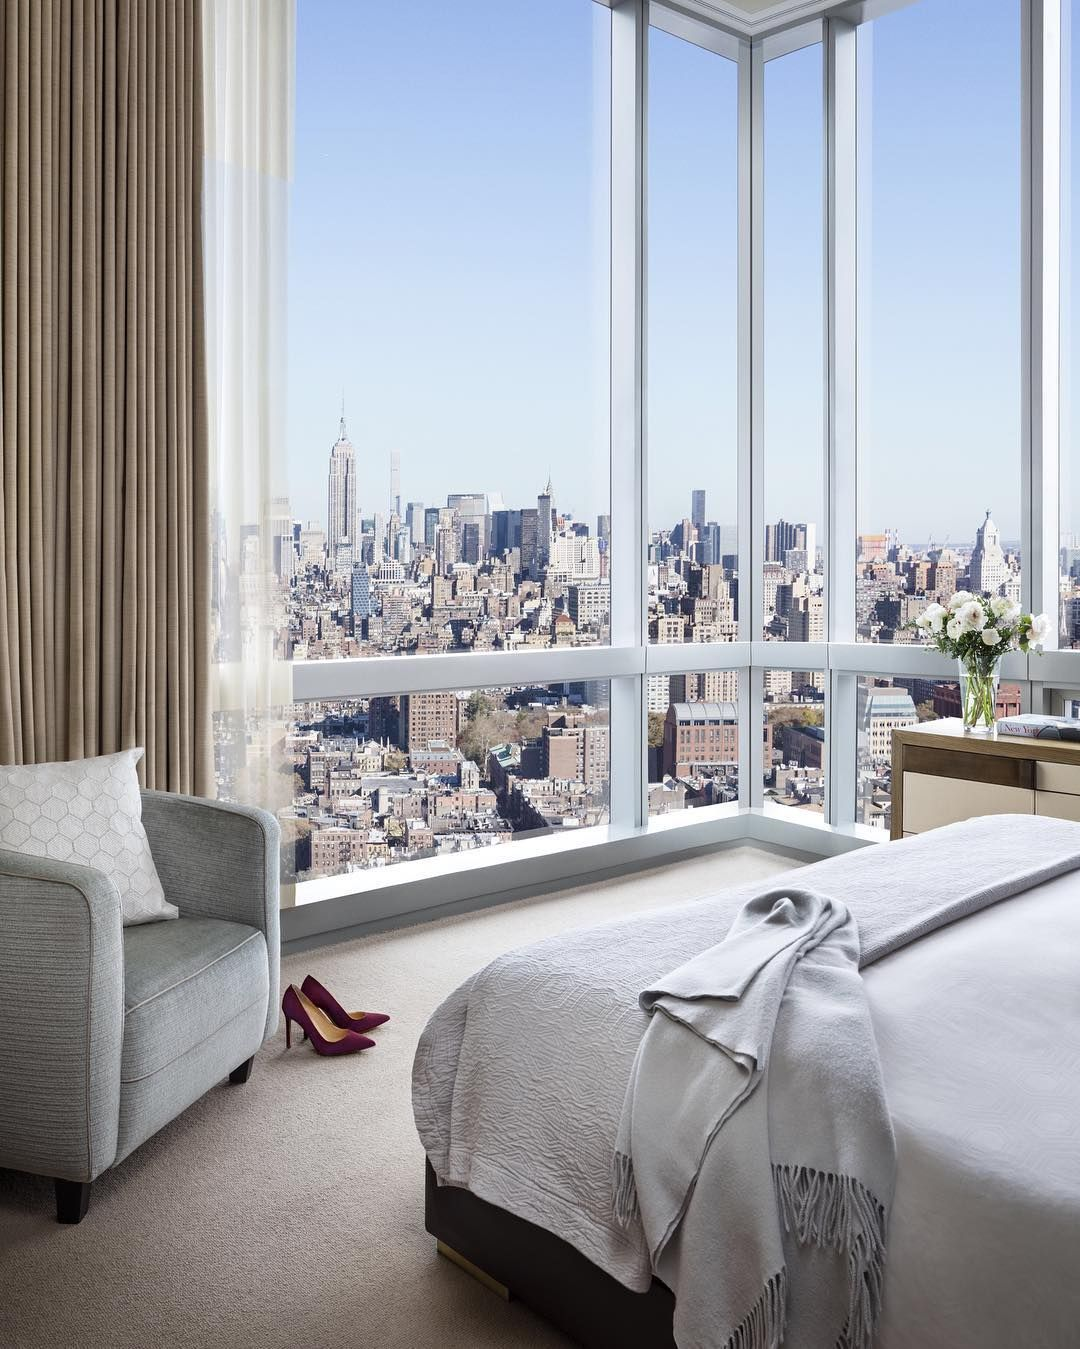 Decent Apartments: Good Morning #NYC! Dreamy View Courtesy Of #TrumpSohoand I